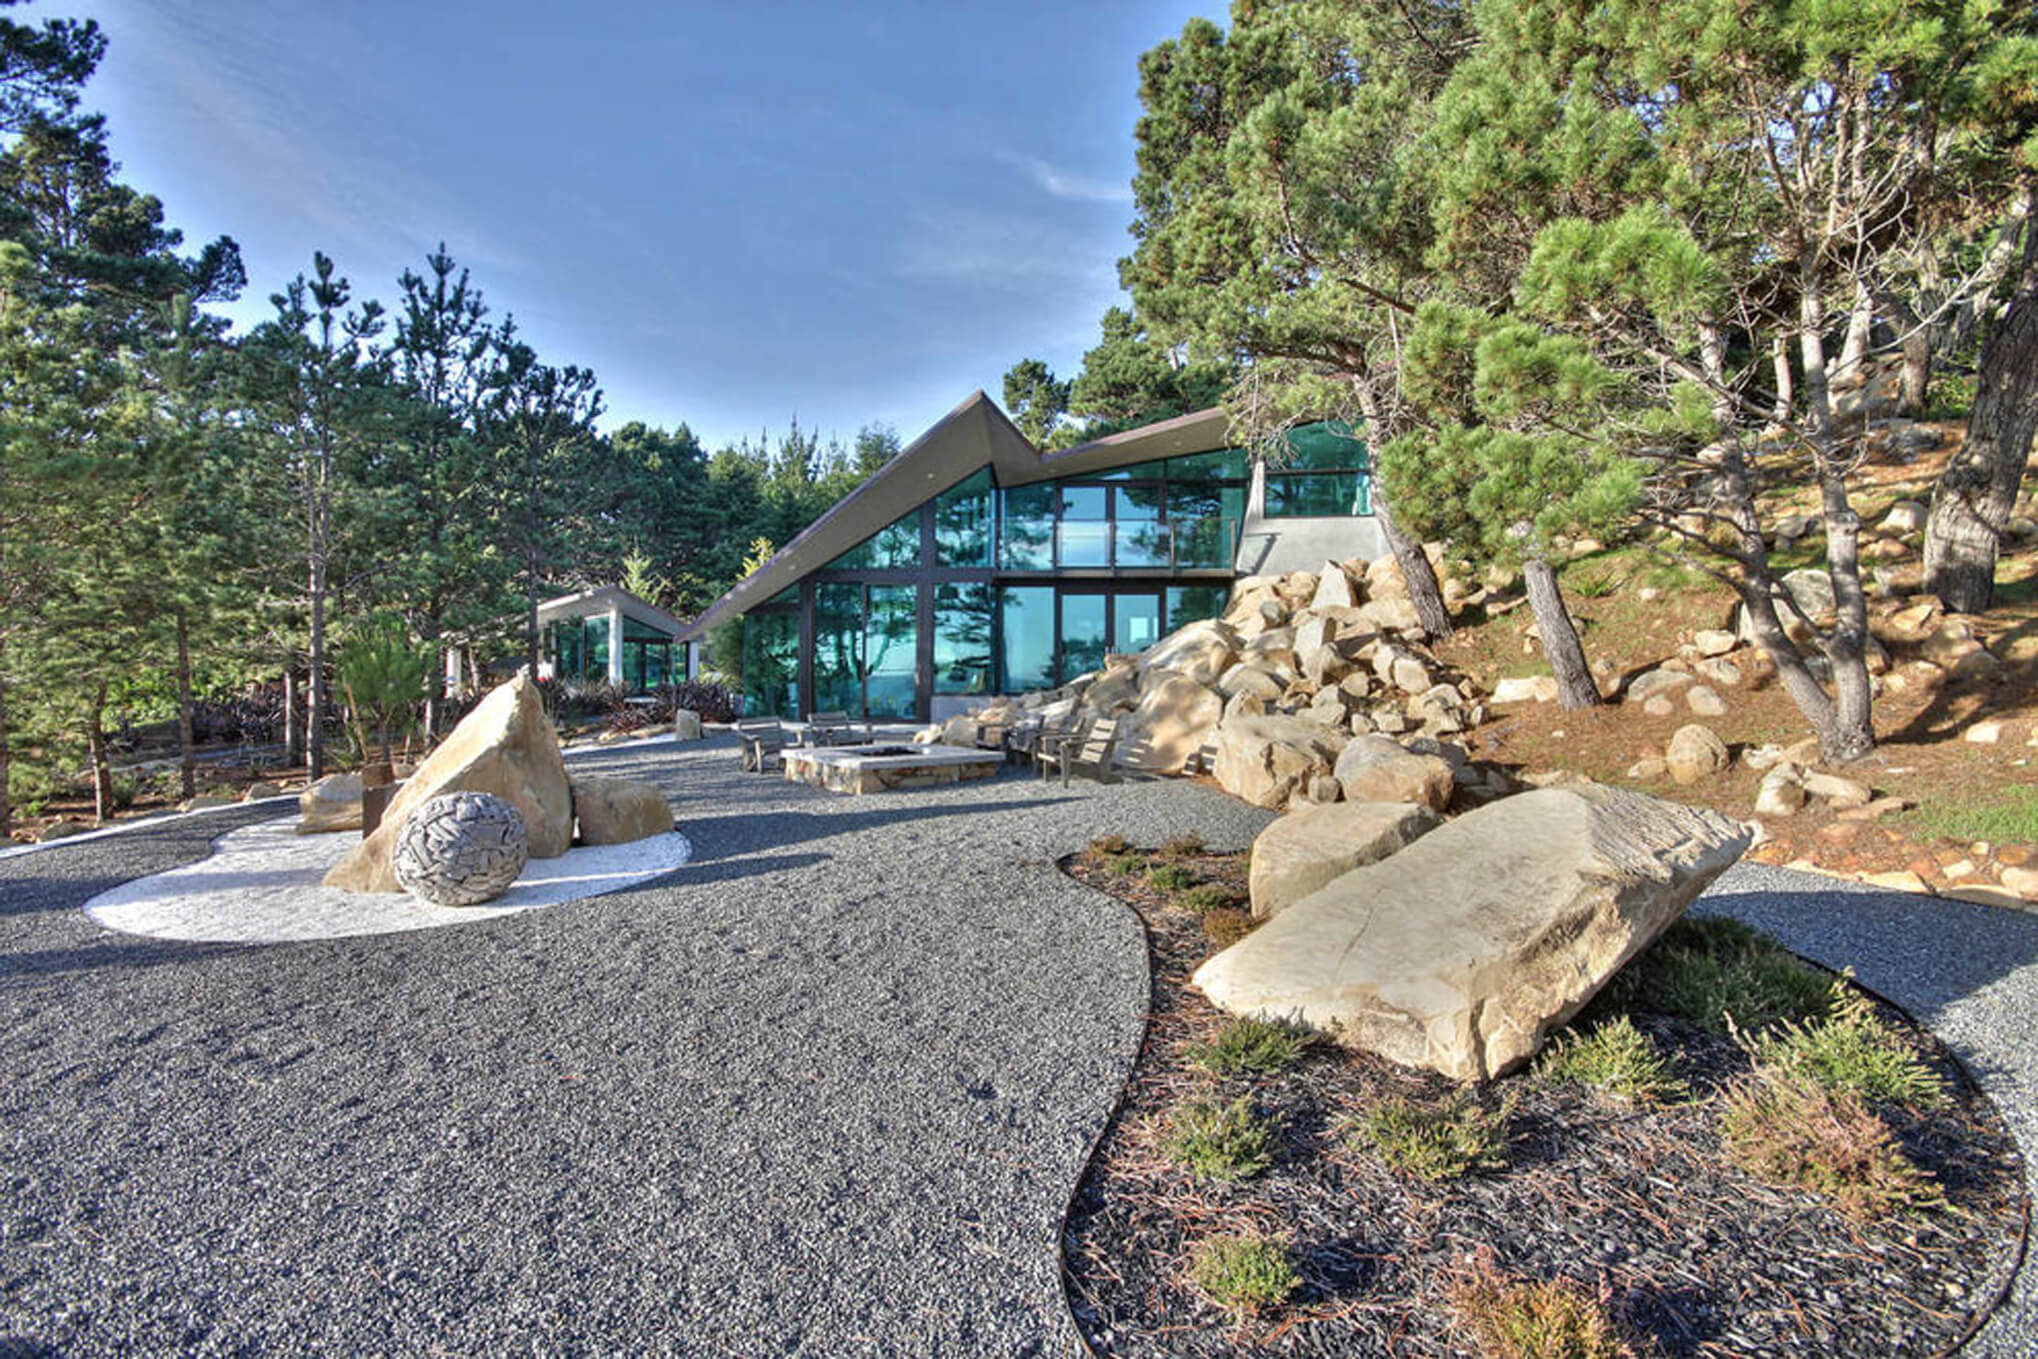 Exterior photography of property located on Sonoma Coast, California with interiors by interior designer, RM Interiors.